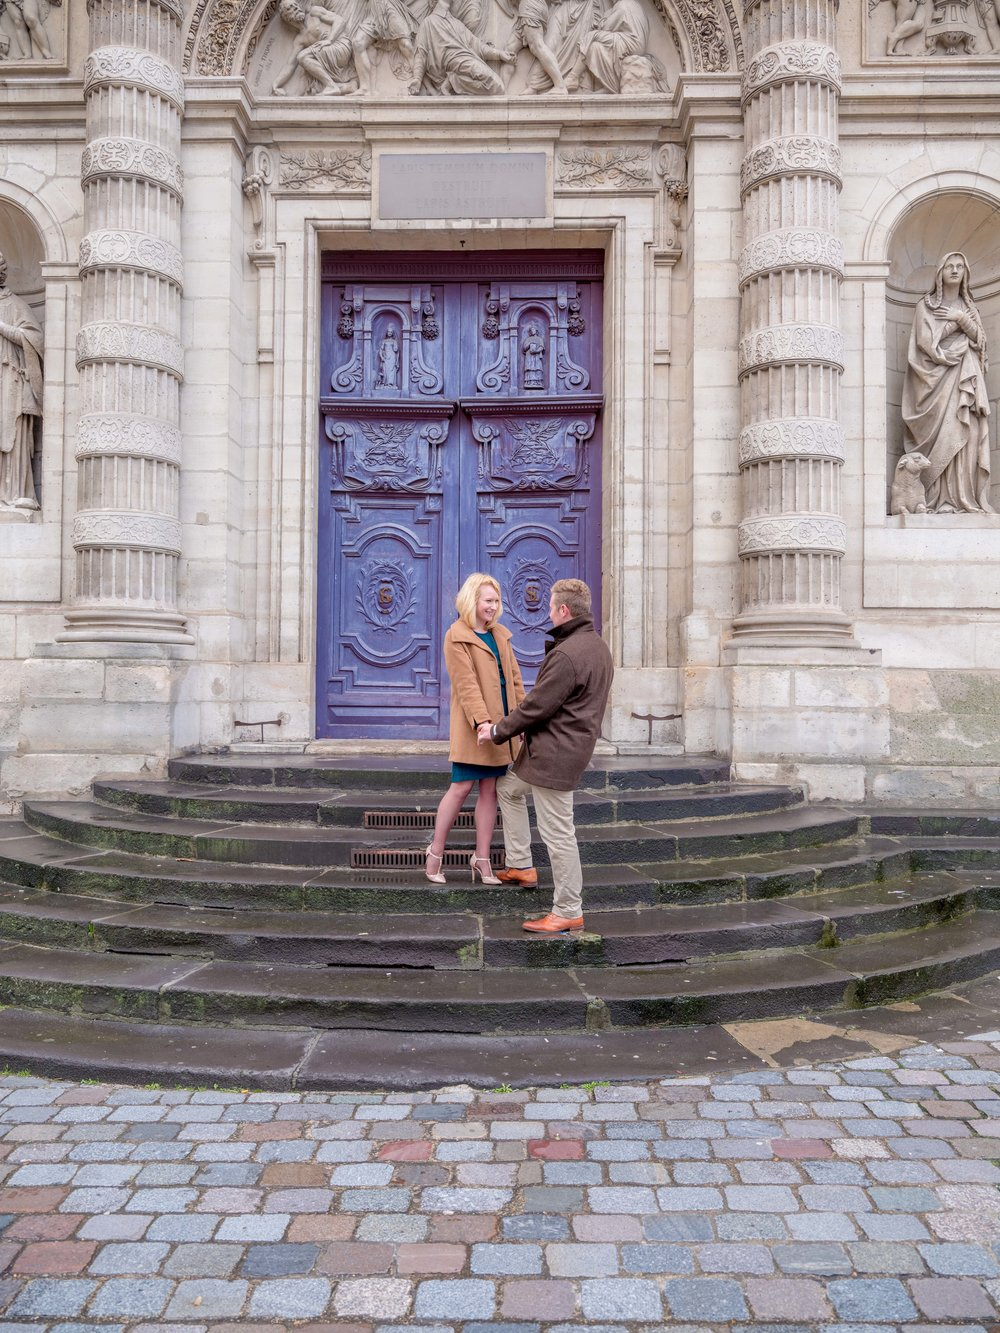 Paris is filled with amazing colored doors, it's a great way to add color on a gloomy day!